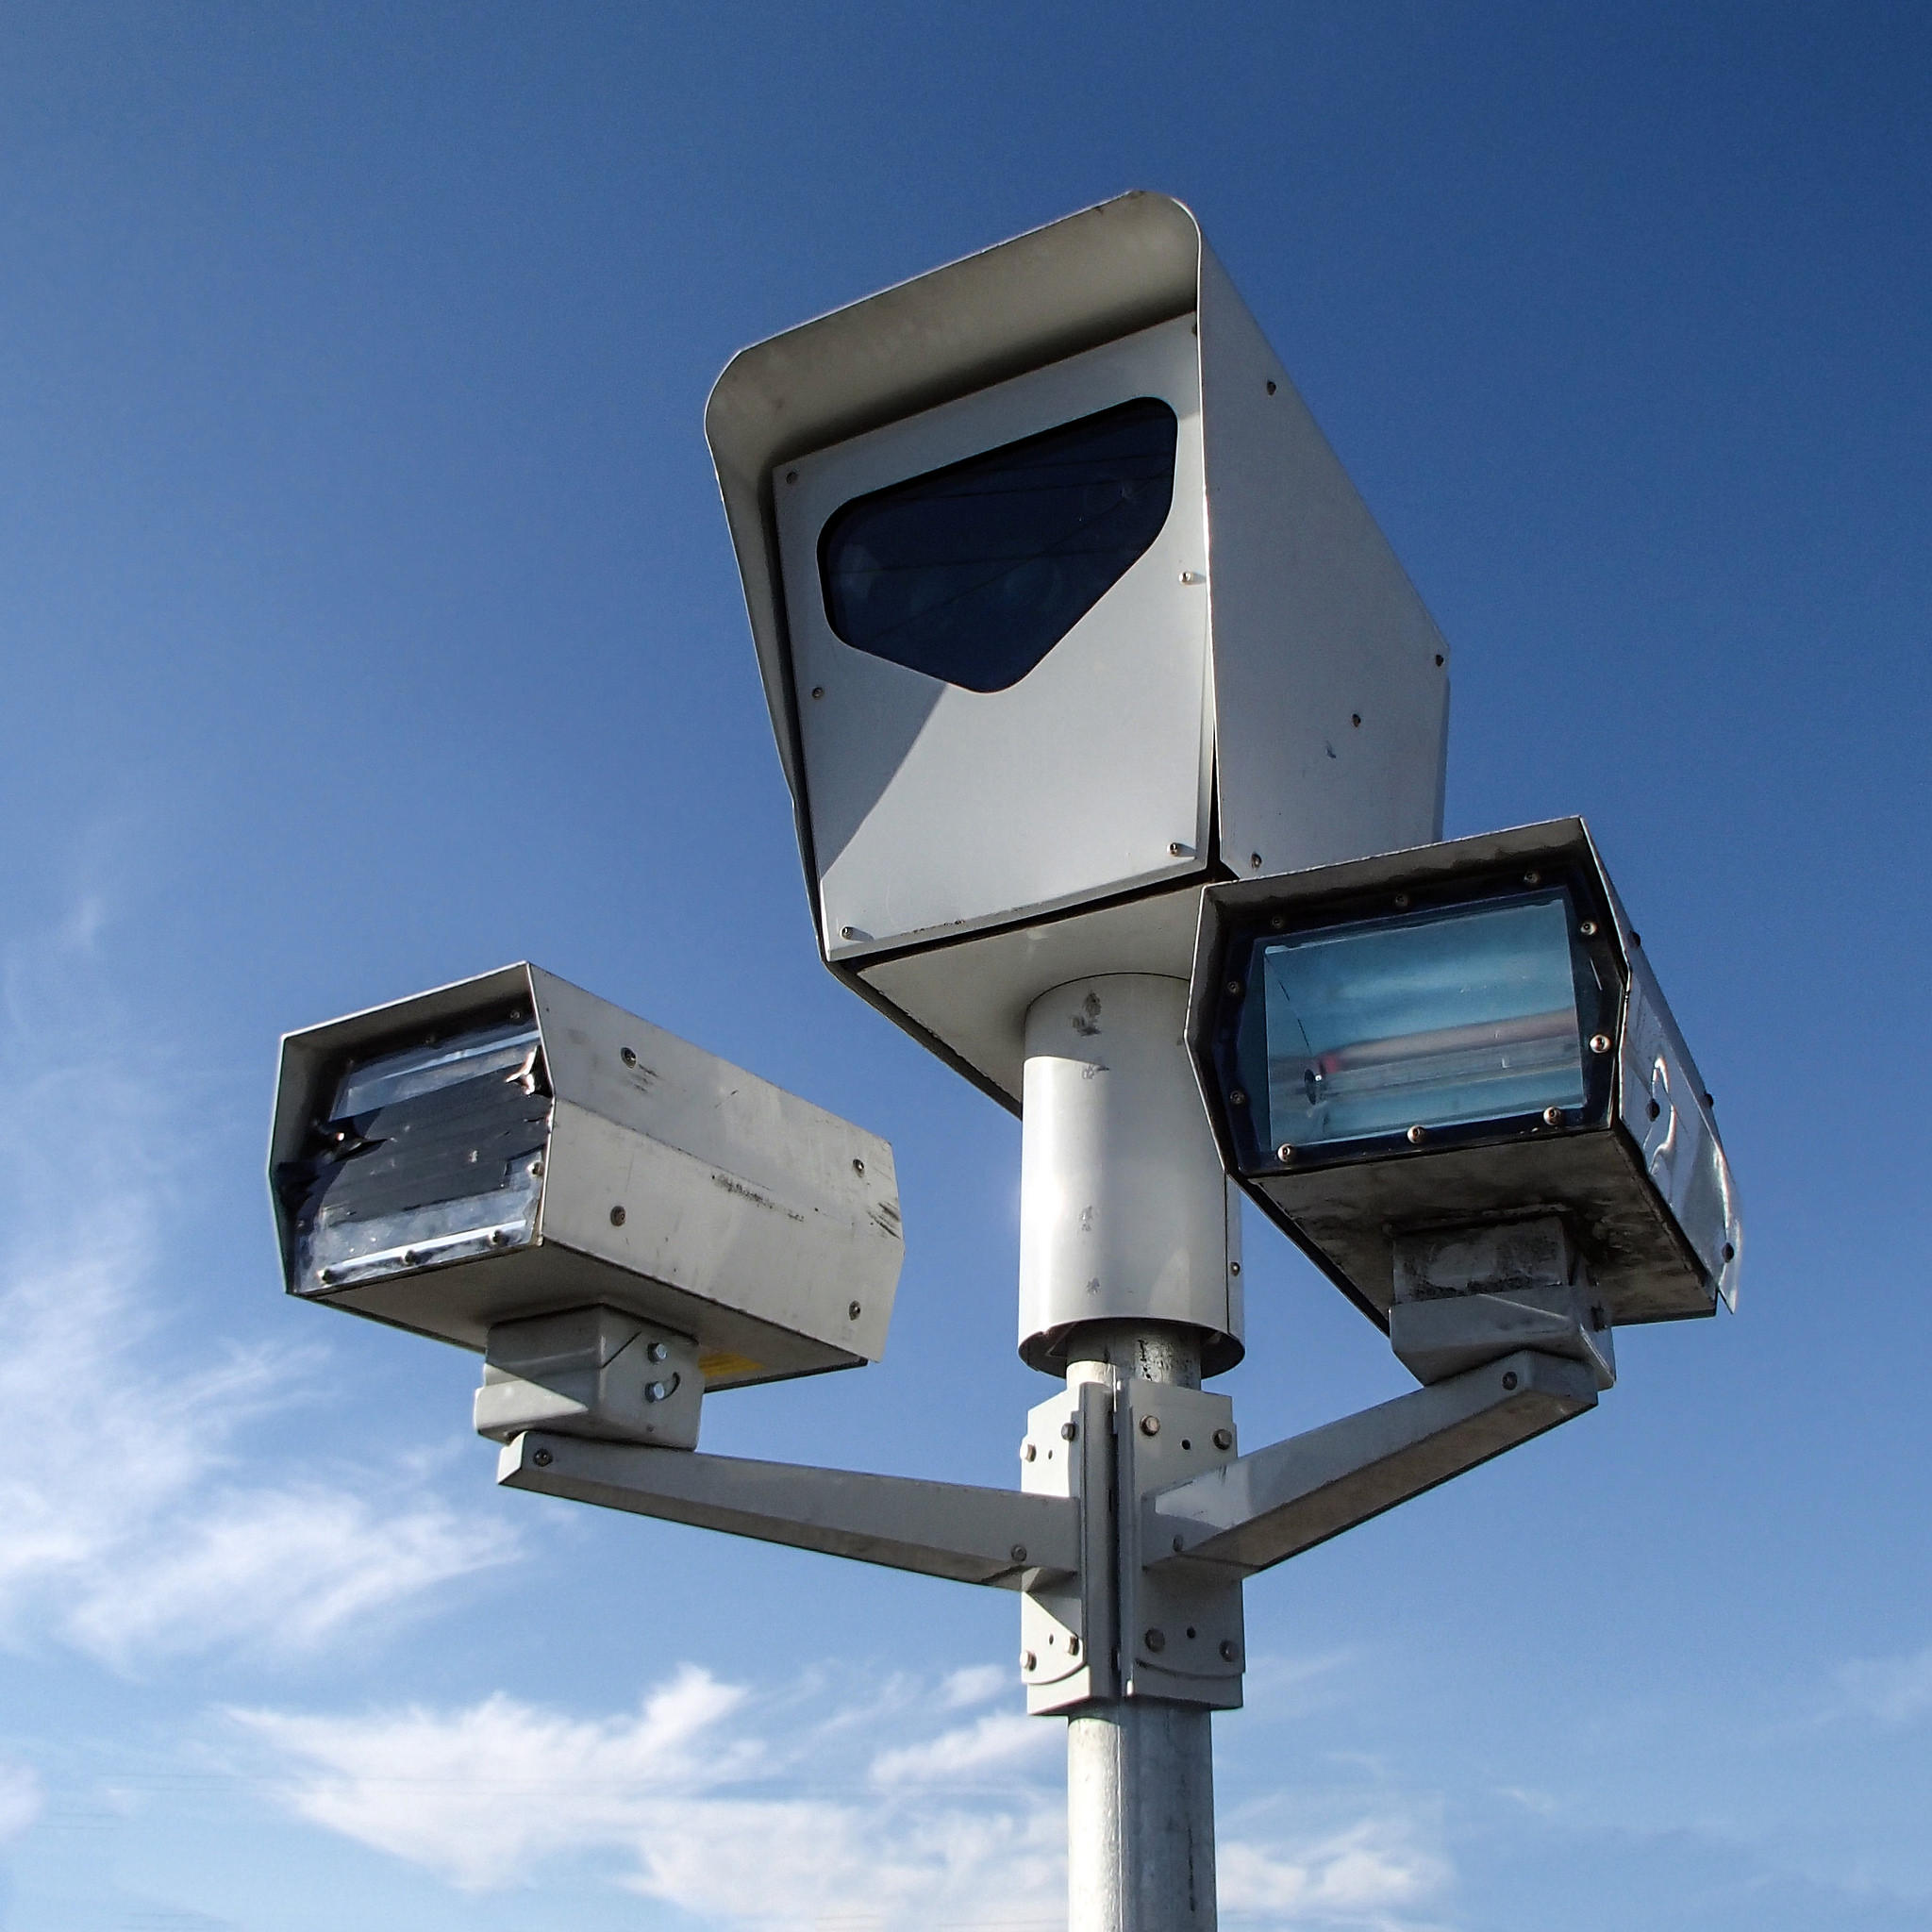 The Florida Department Of Law Enforcement Is Going To Investigate Whether A  Political Bribery Scandal At The Redflex Firm Extends To Its Red Light  Camera ...